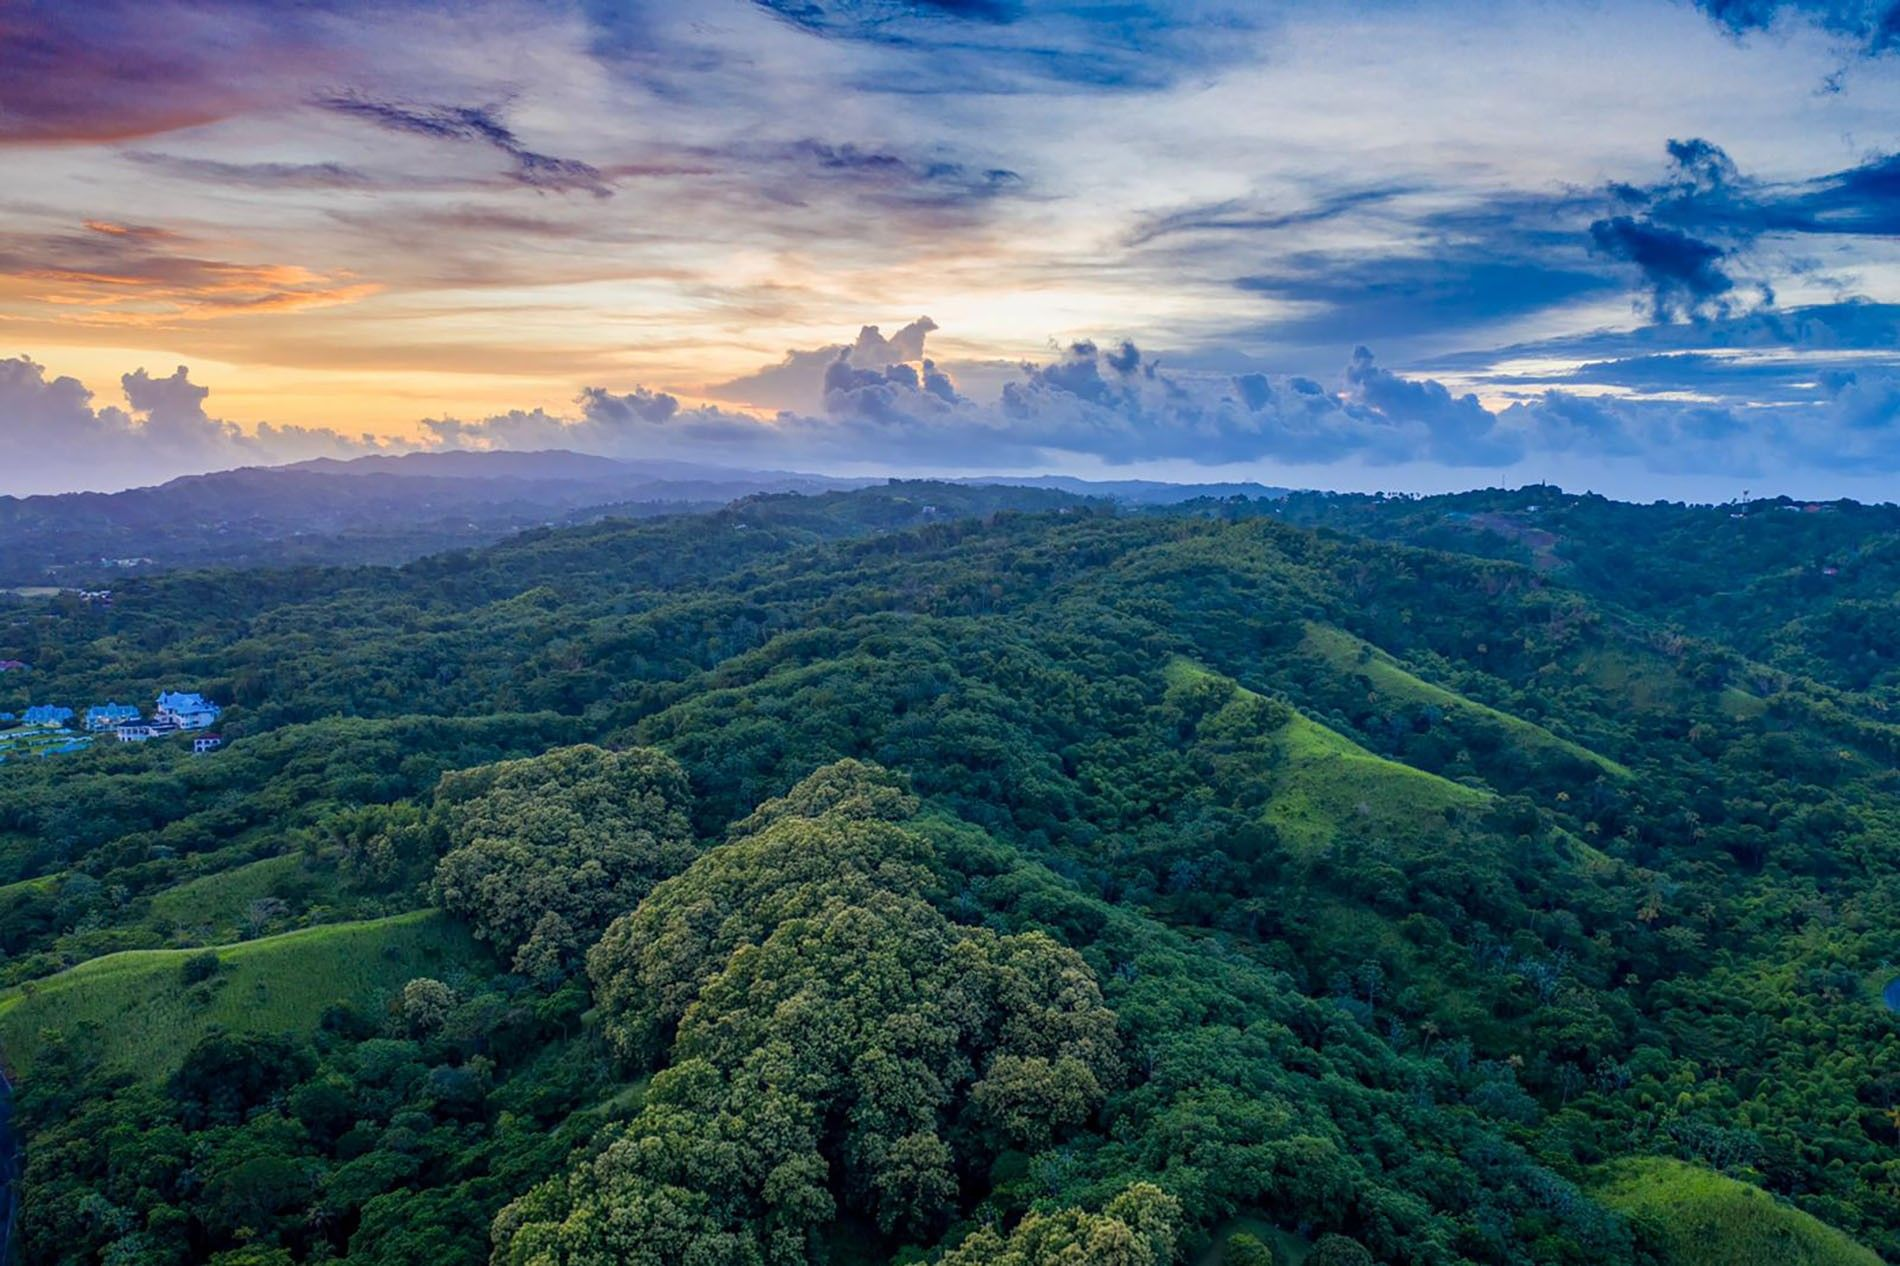 The Main Ridge Forest Reserve, one of the most biodiverse areas in the Caribbean and the ...